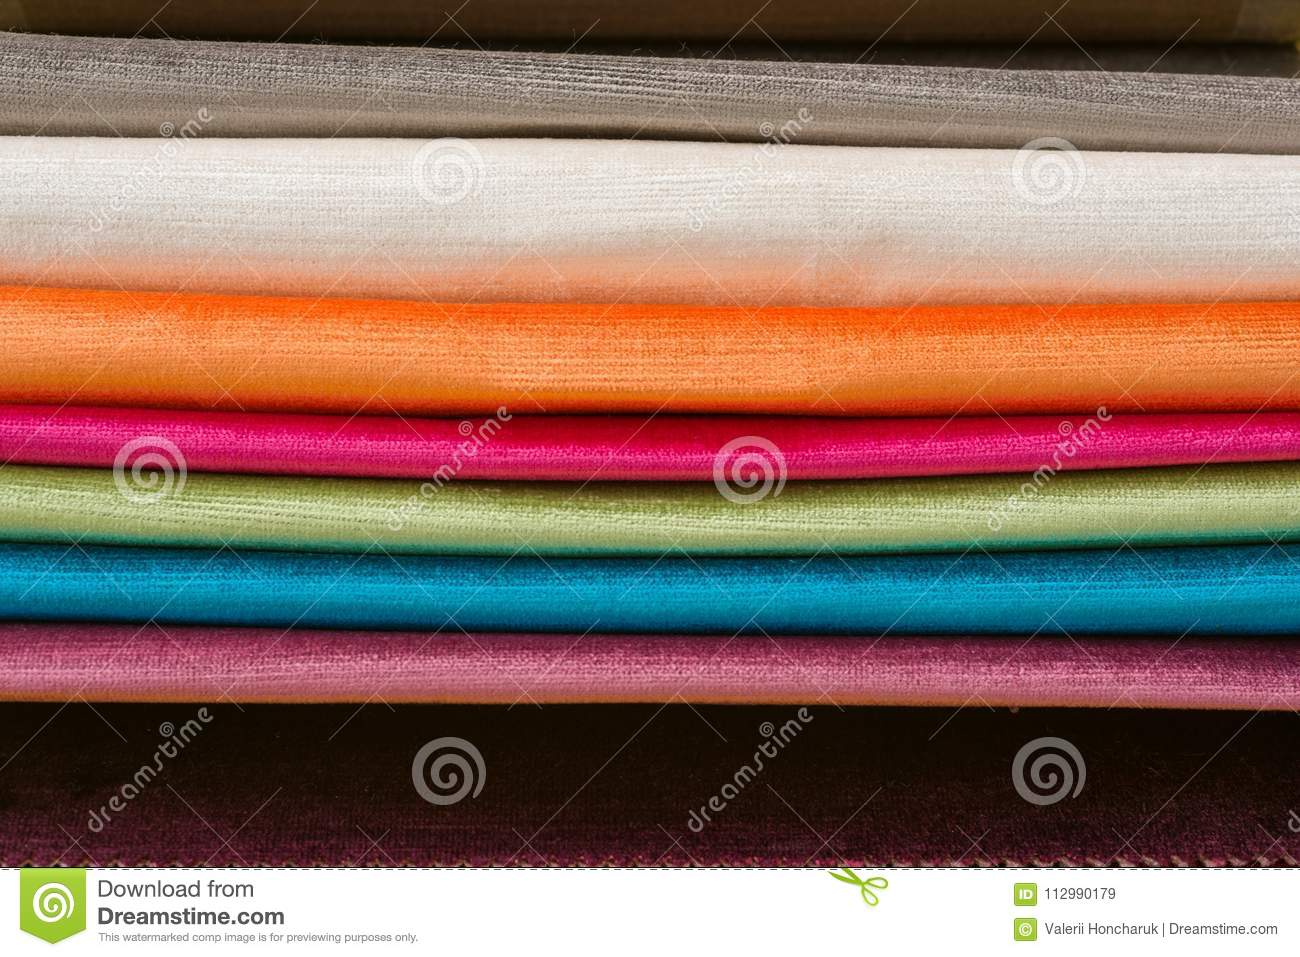 Samples of colorful interior fabrics. Book of fabrics for curtains, upholstery